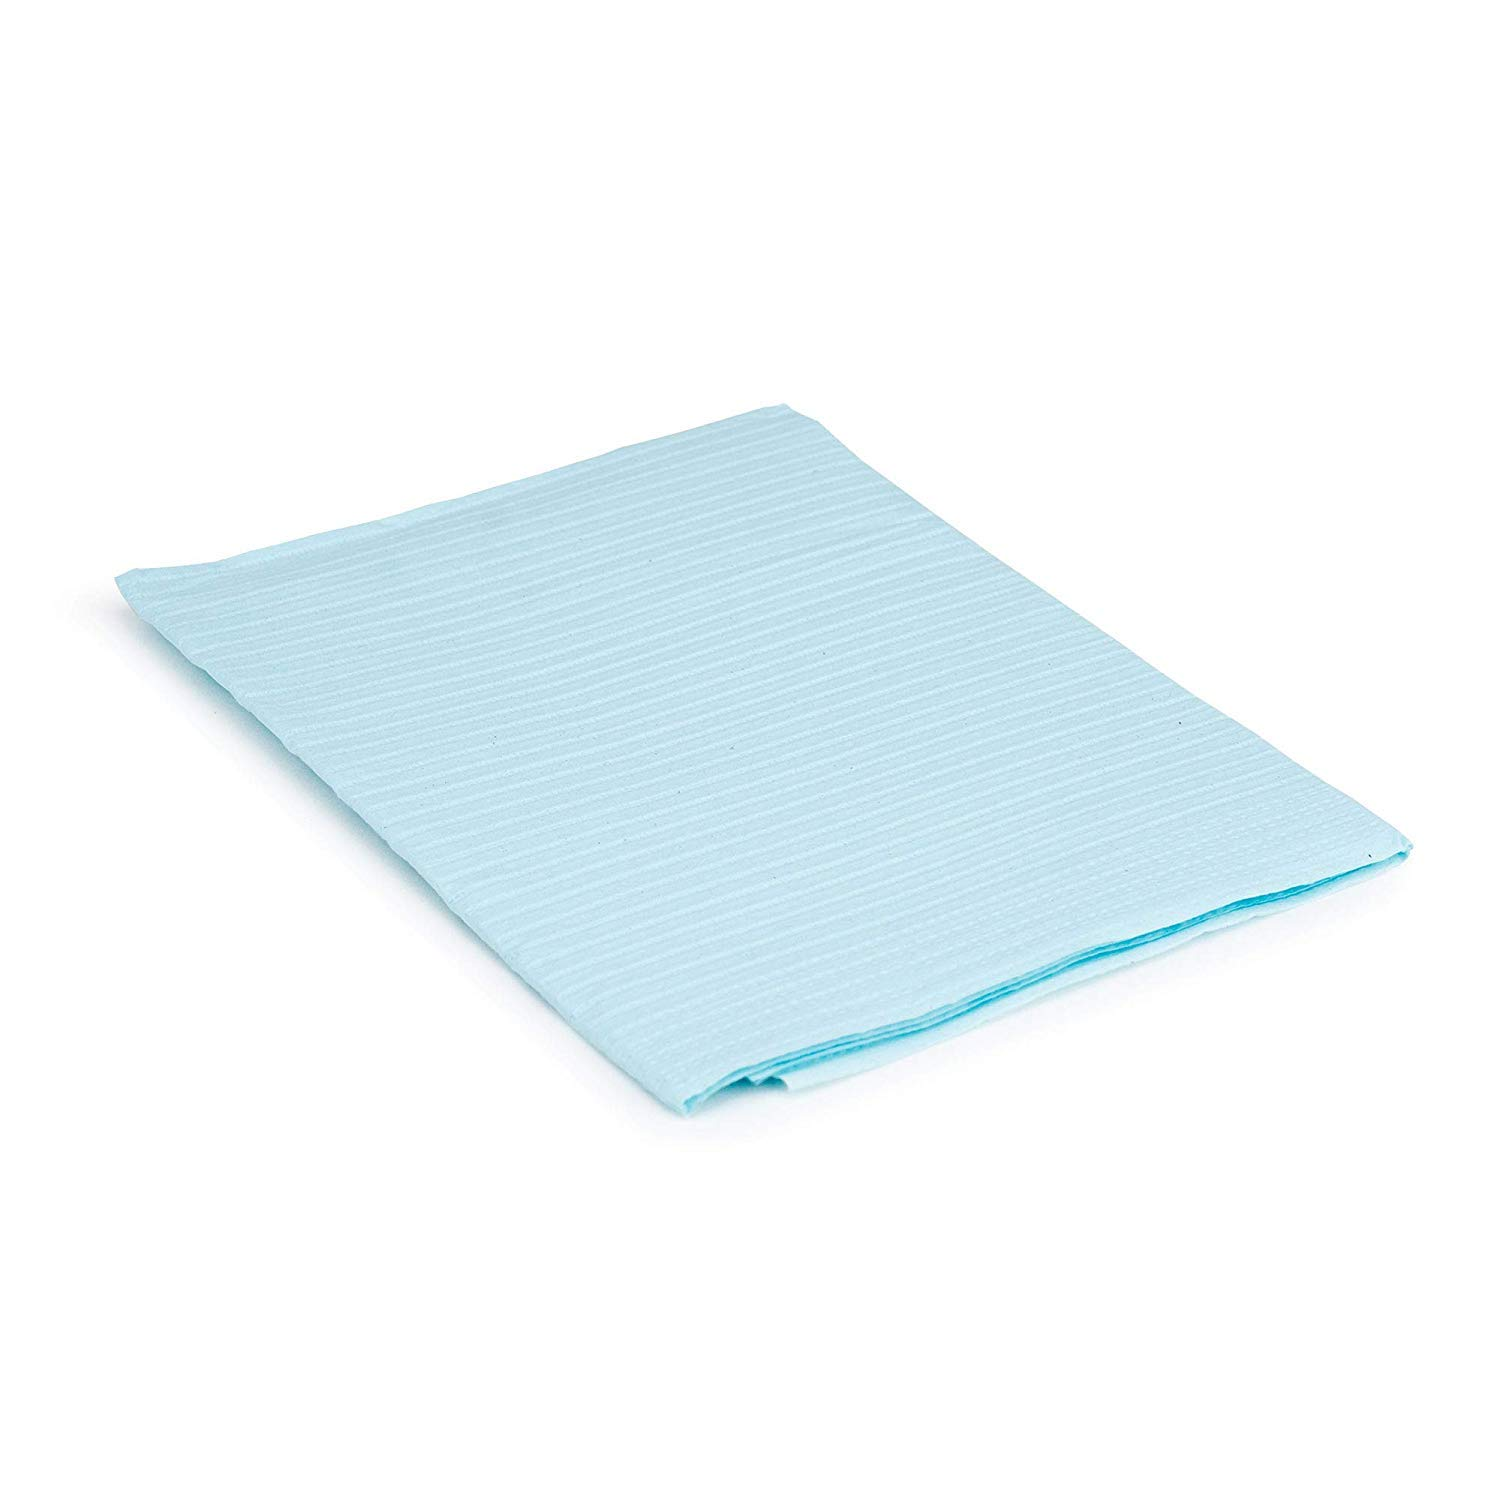 Fees free Limited price sale Crosstex Polyback Patient Towel Extra-Heavy 19